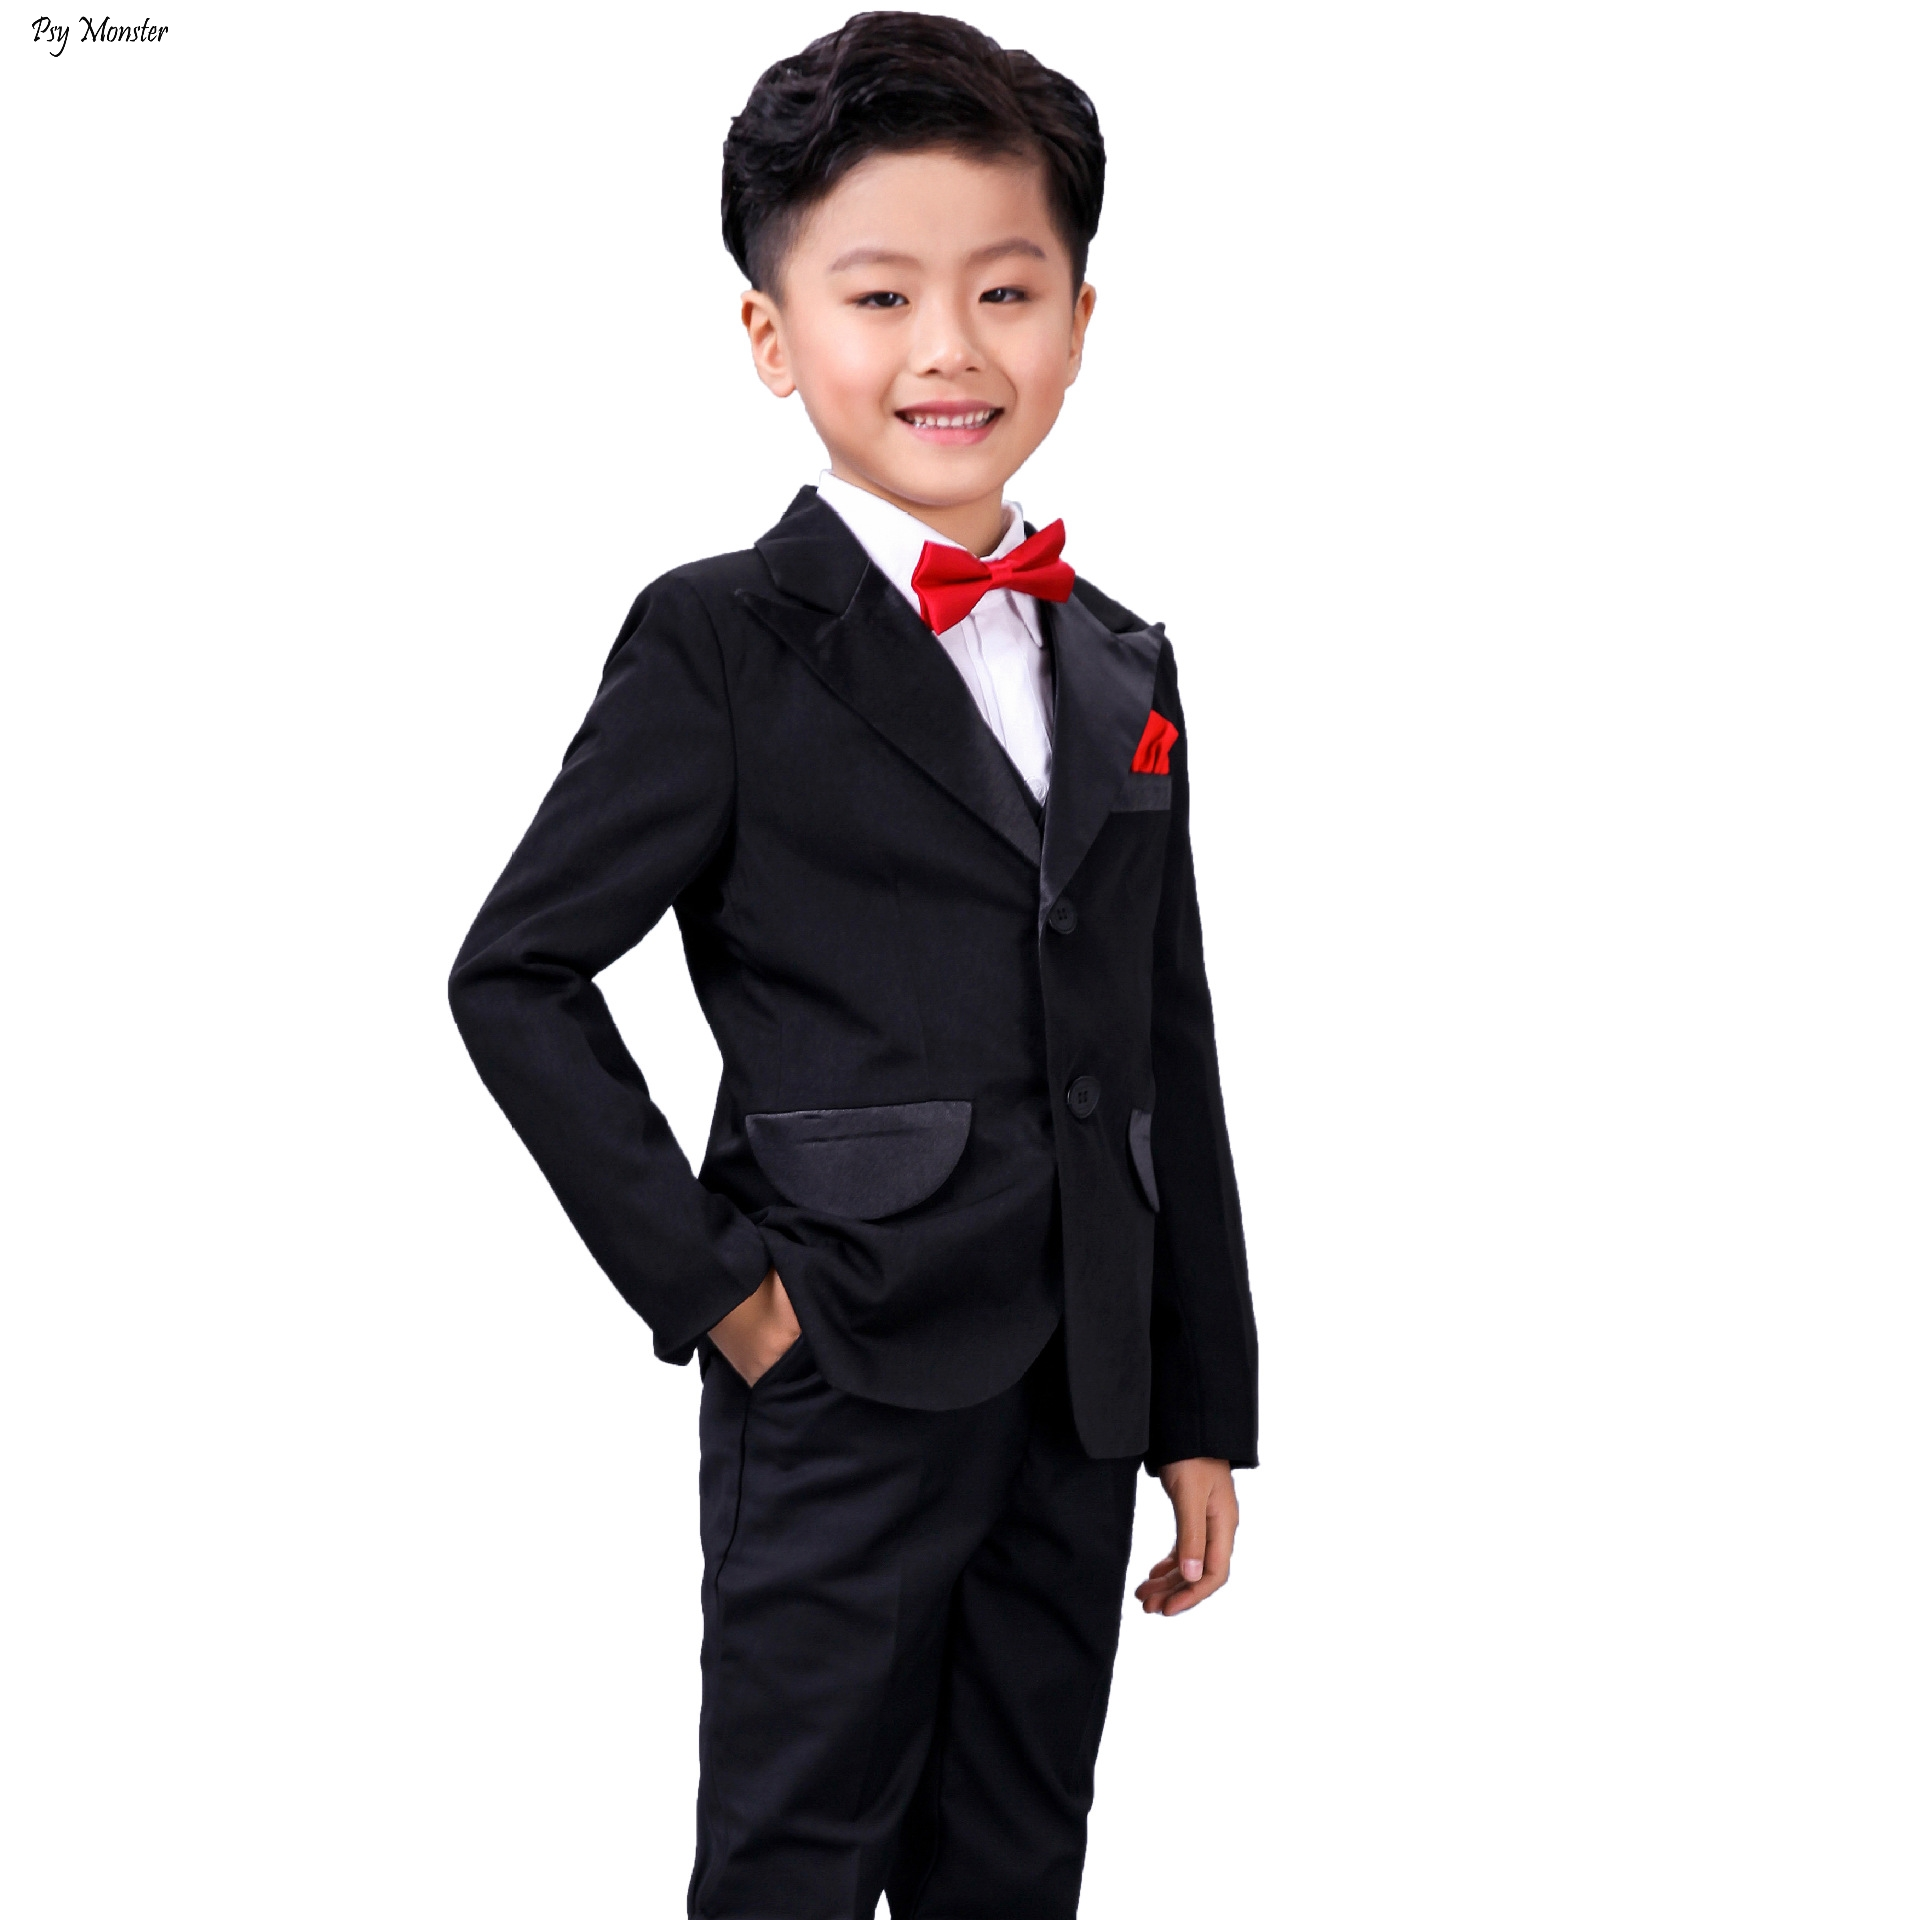 Childrens Formal Suit Flower Boy Host Piano Performance Dress Costume Autumn Winter Kids Prom Birthday Wedding Clothing SetChildrens Formal Suit Flower Boy Host Piano Performance Dress Costume Autumn Winter Kids Prom Birthday Wedding Clothing Set